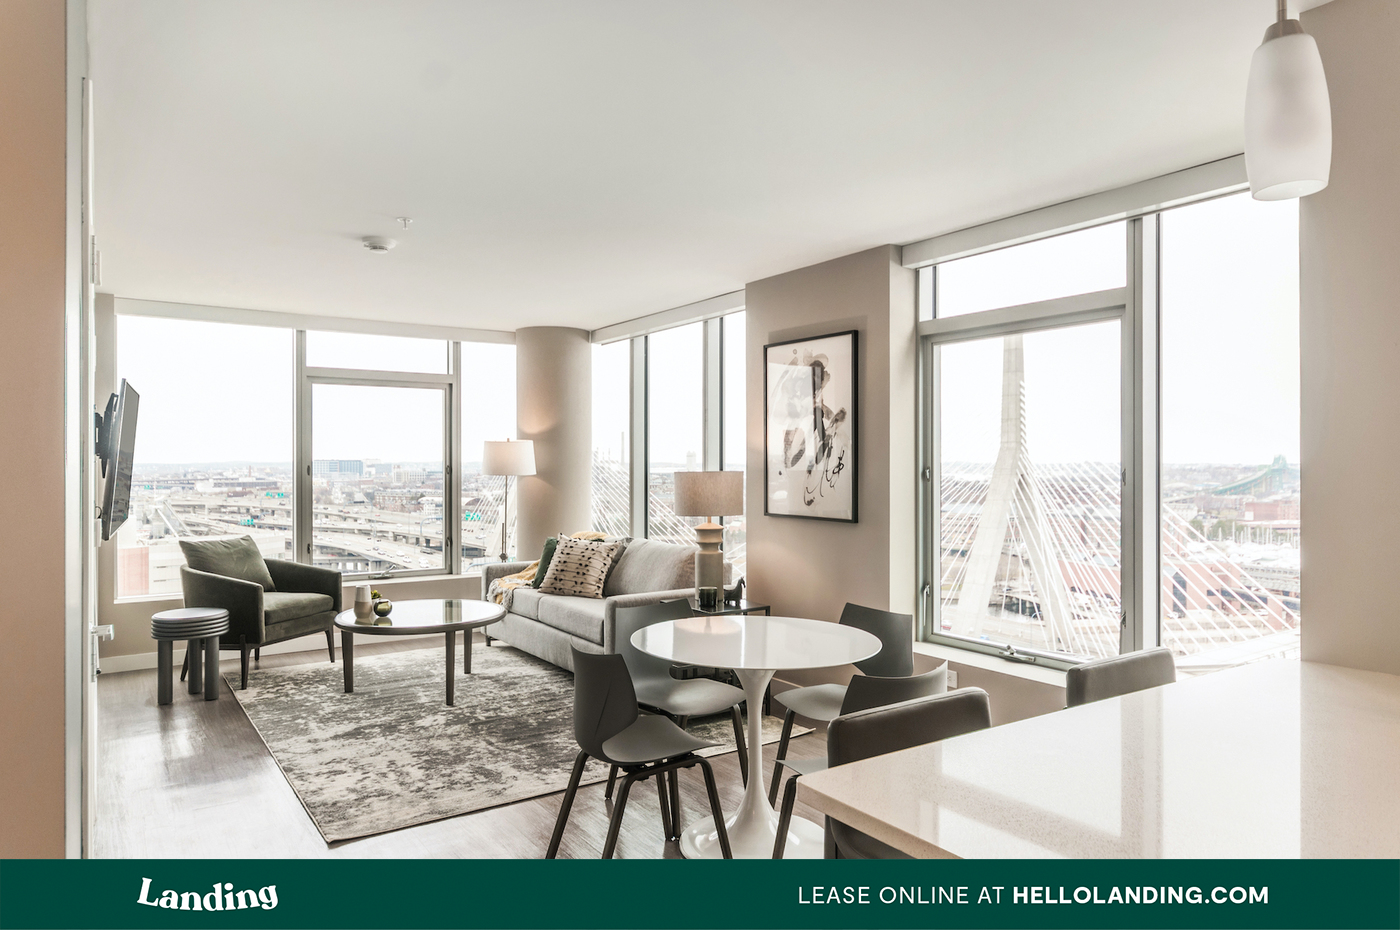 Dartmouth Tower DAR145 for rent